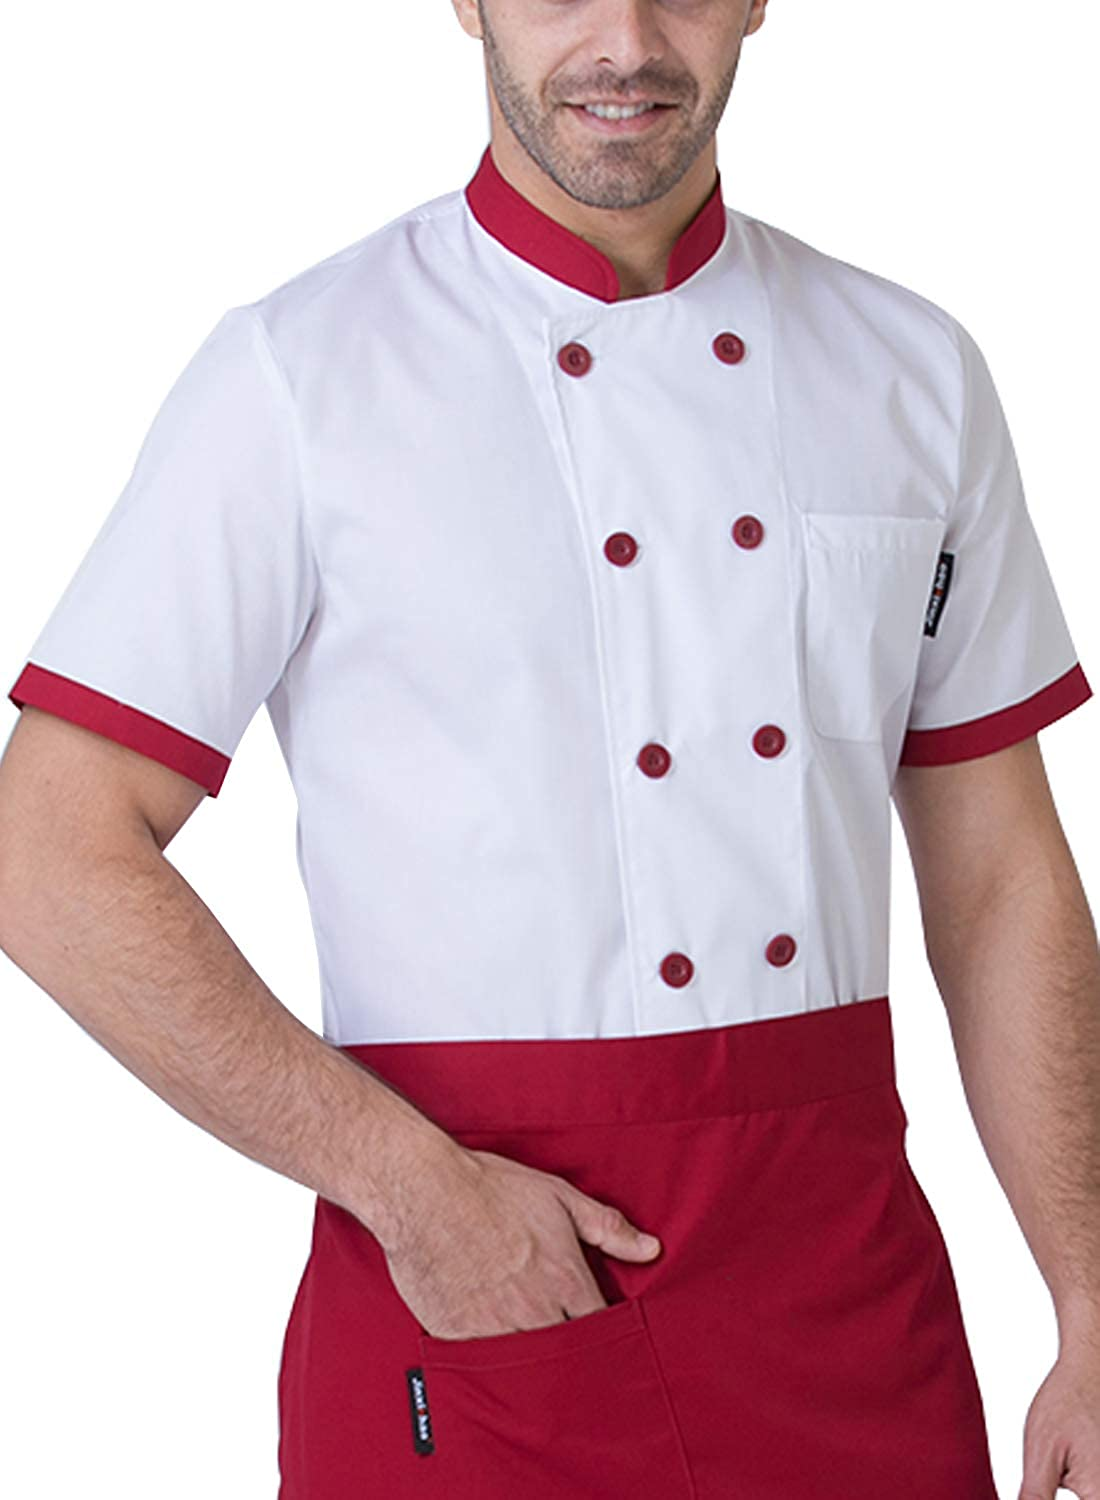 BOUPIUN Men's Summer Chef Jacket with Short Sleeve Cooking Waiter Uniform Hotel Kitchen Chef Working Coat 4 Colors S-3XL